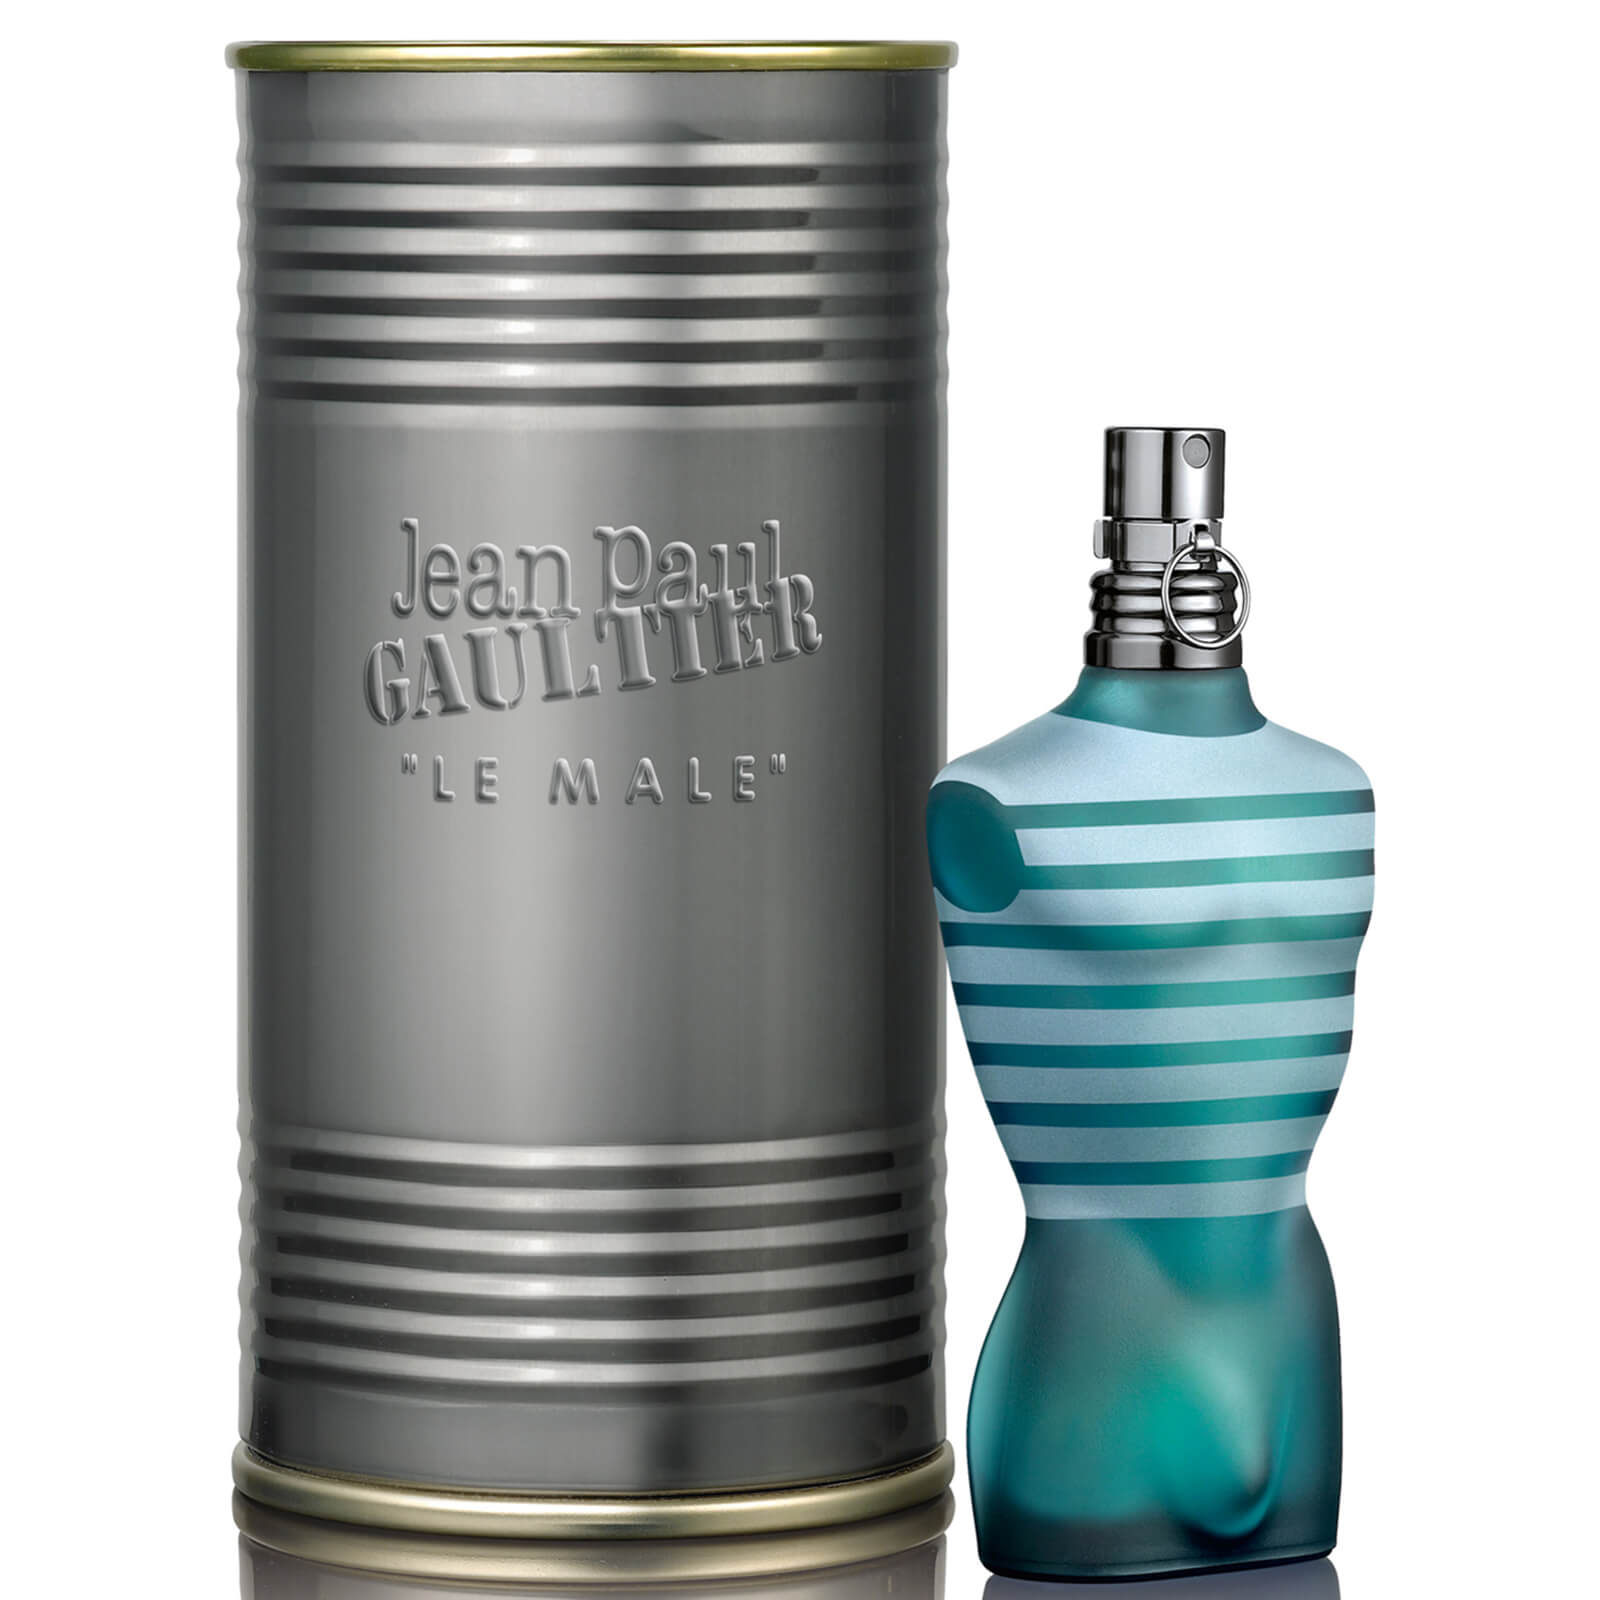 Welp Jean Paul Gaultier Le Male Eau de Toilette 40ml | Free Shipping YU-45